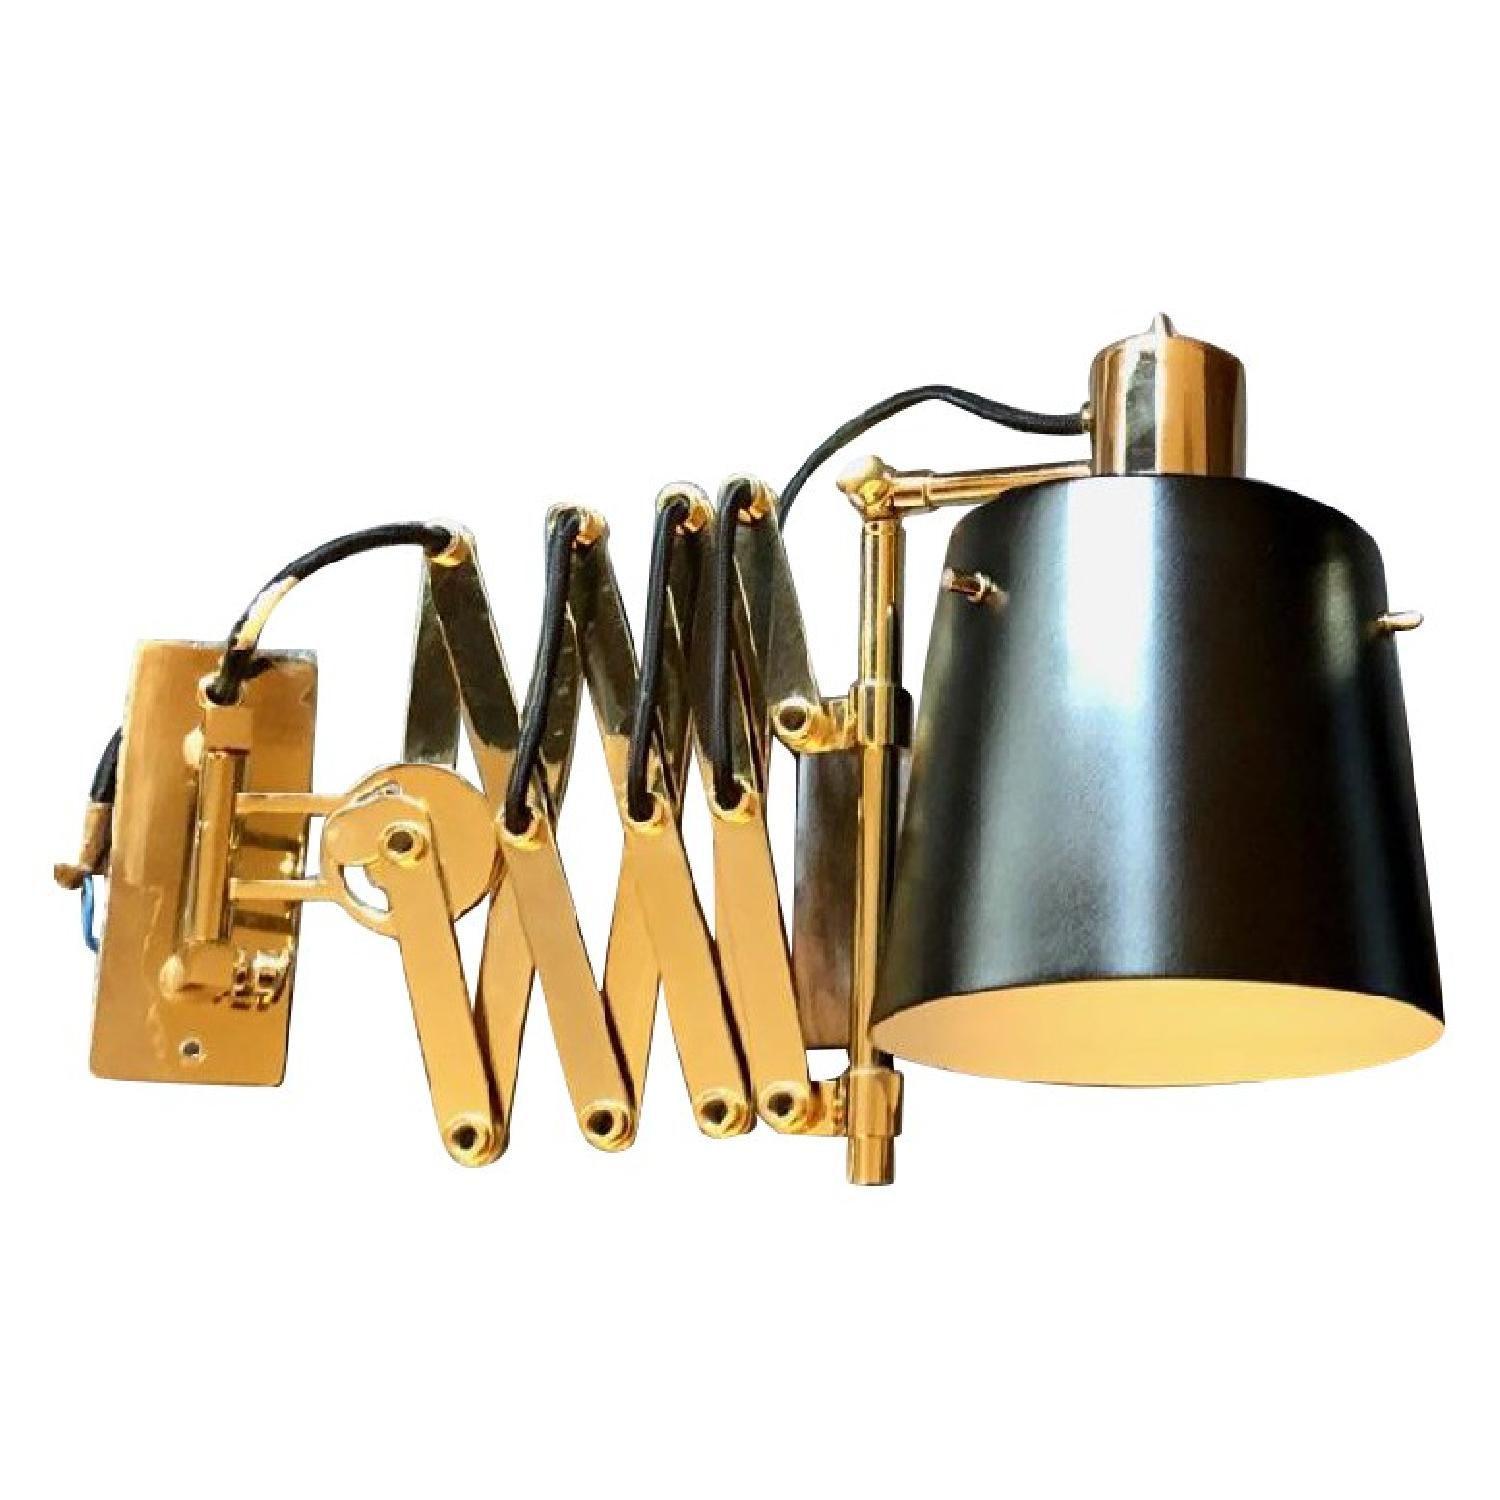 Delighttfull Pastorius Wall Lamps in Gold/Black